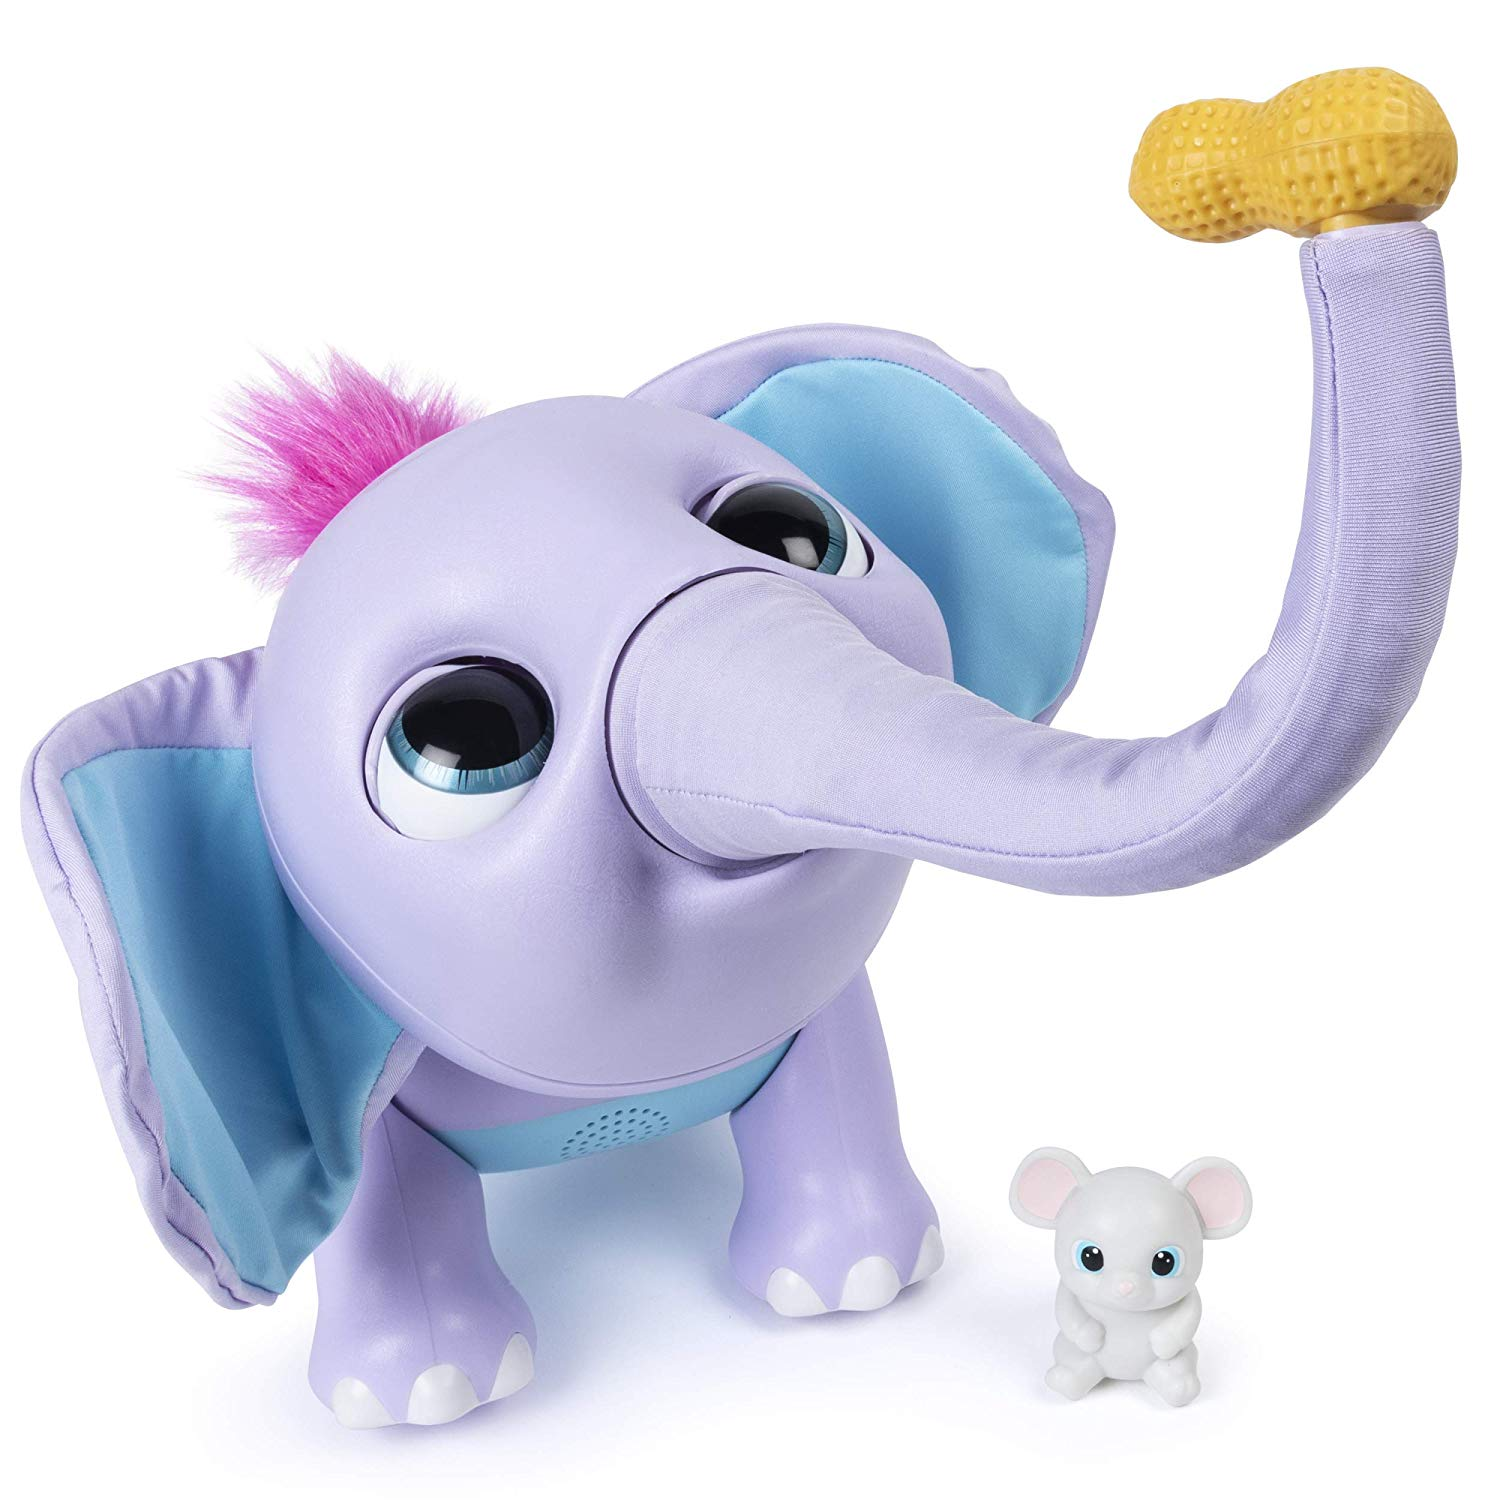 Juno Interactive Baby Elephant – Hot Christmas Gift